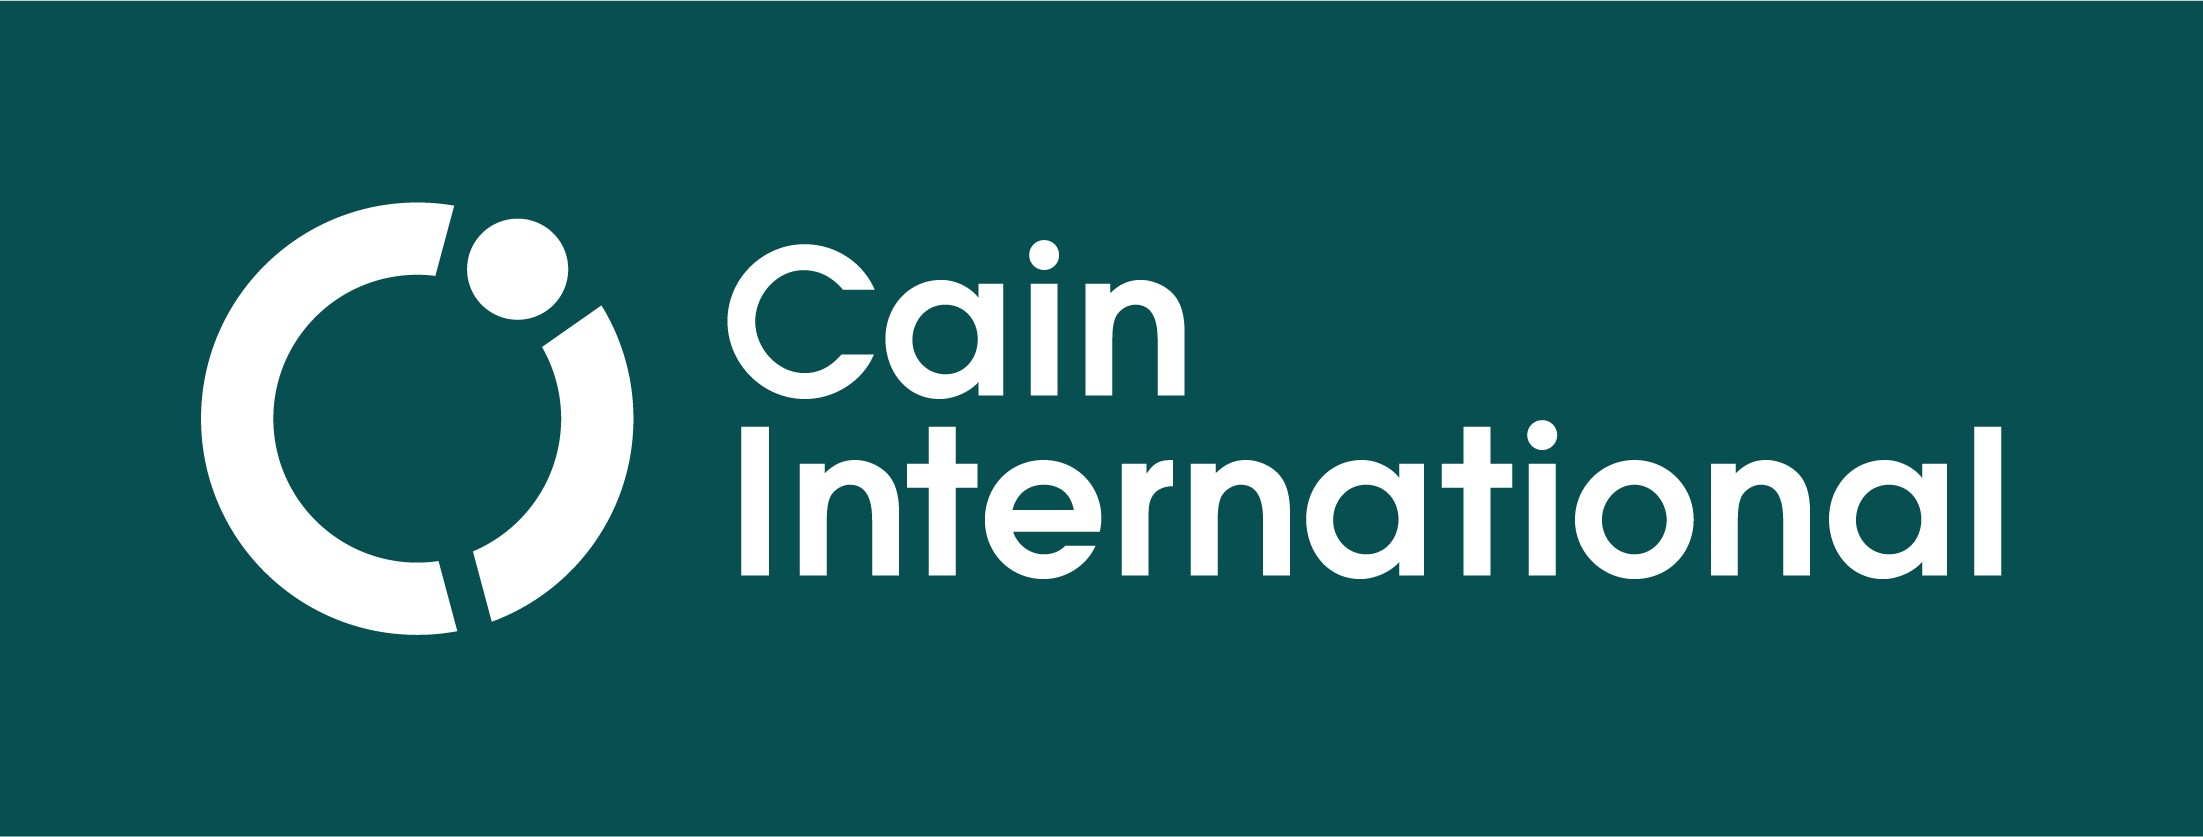 Cain_International_Logo.jpg